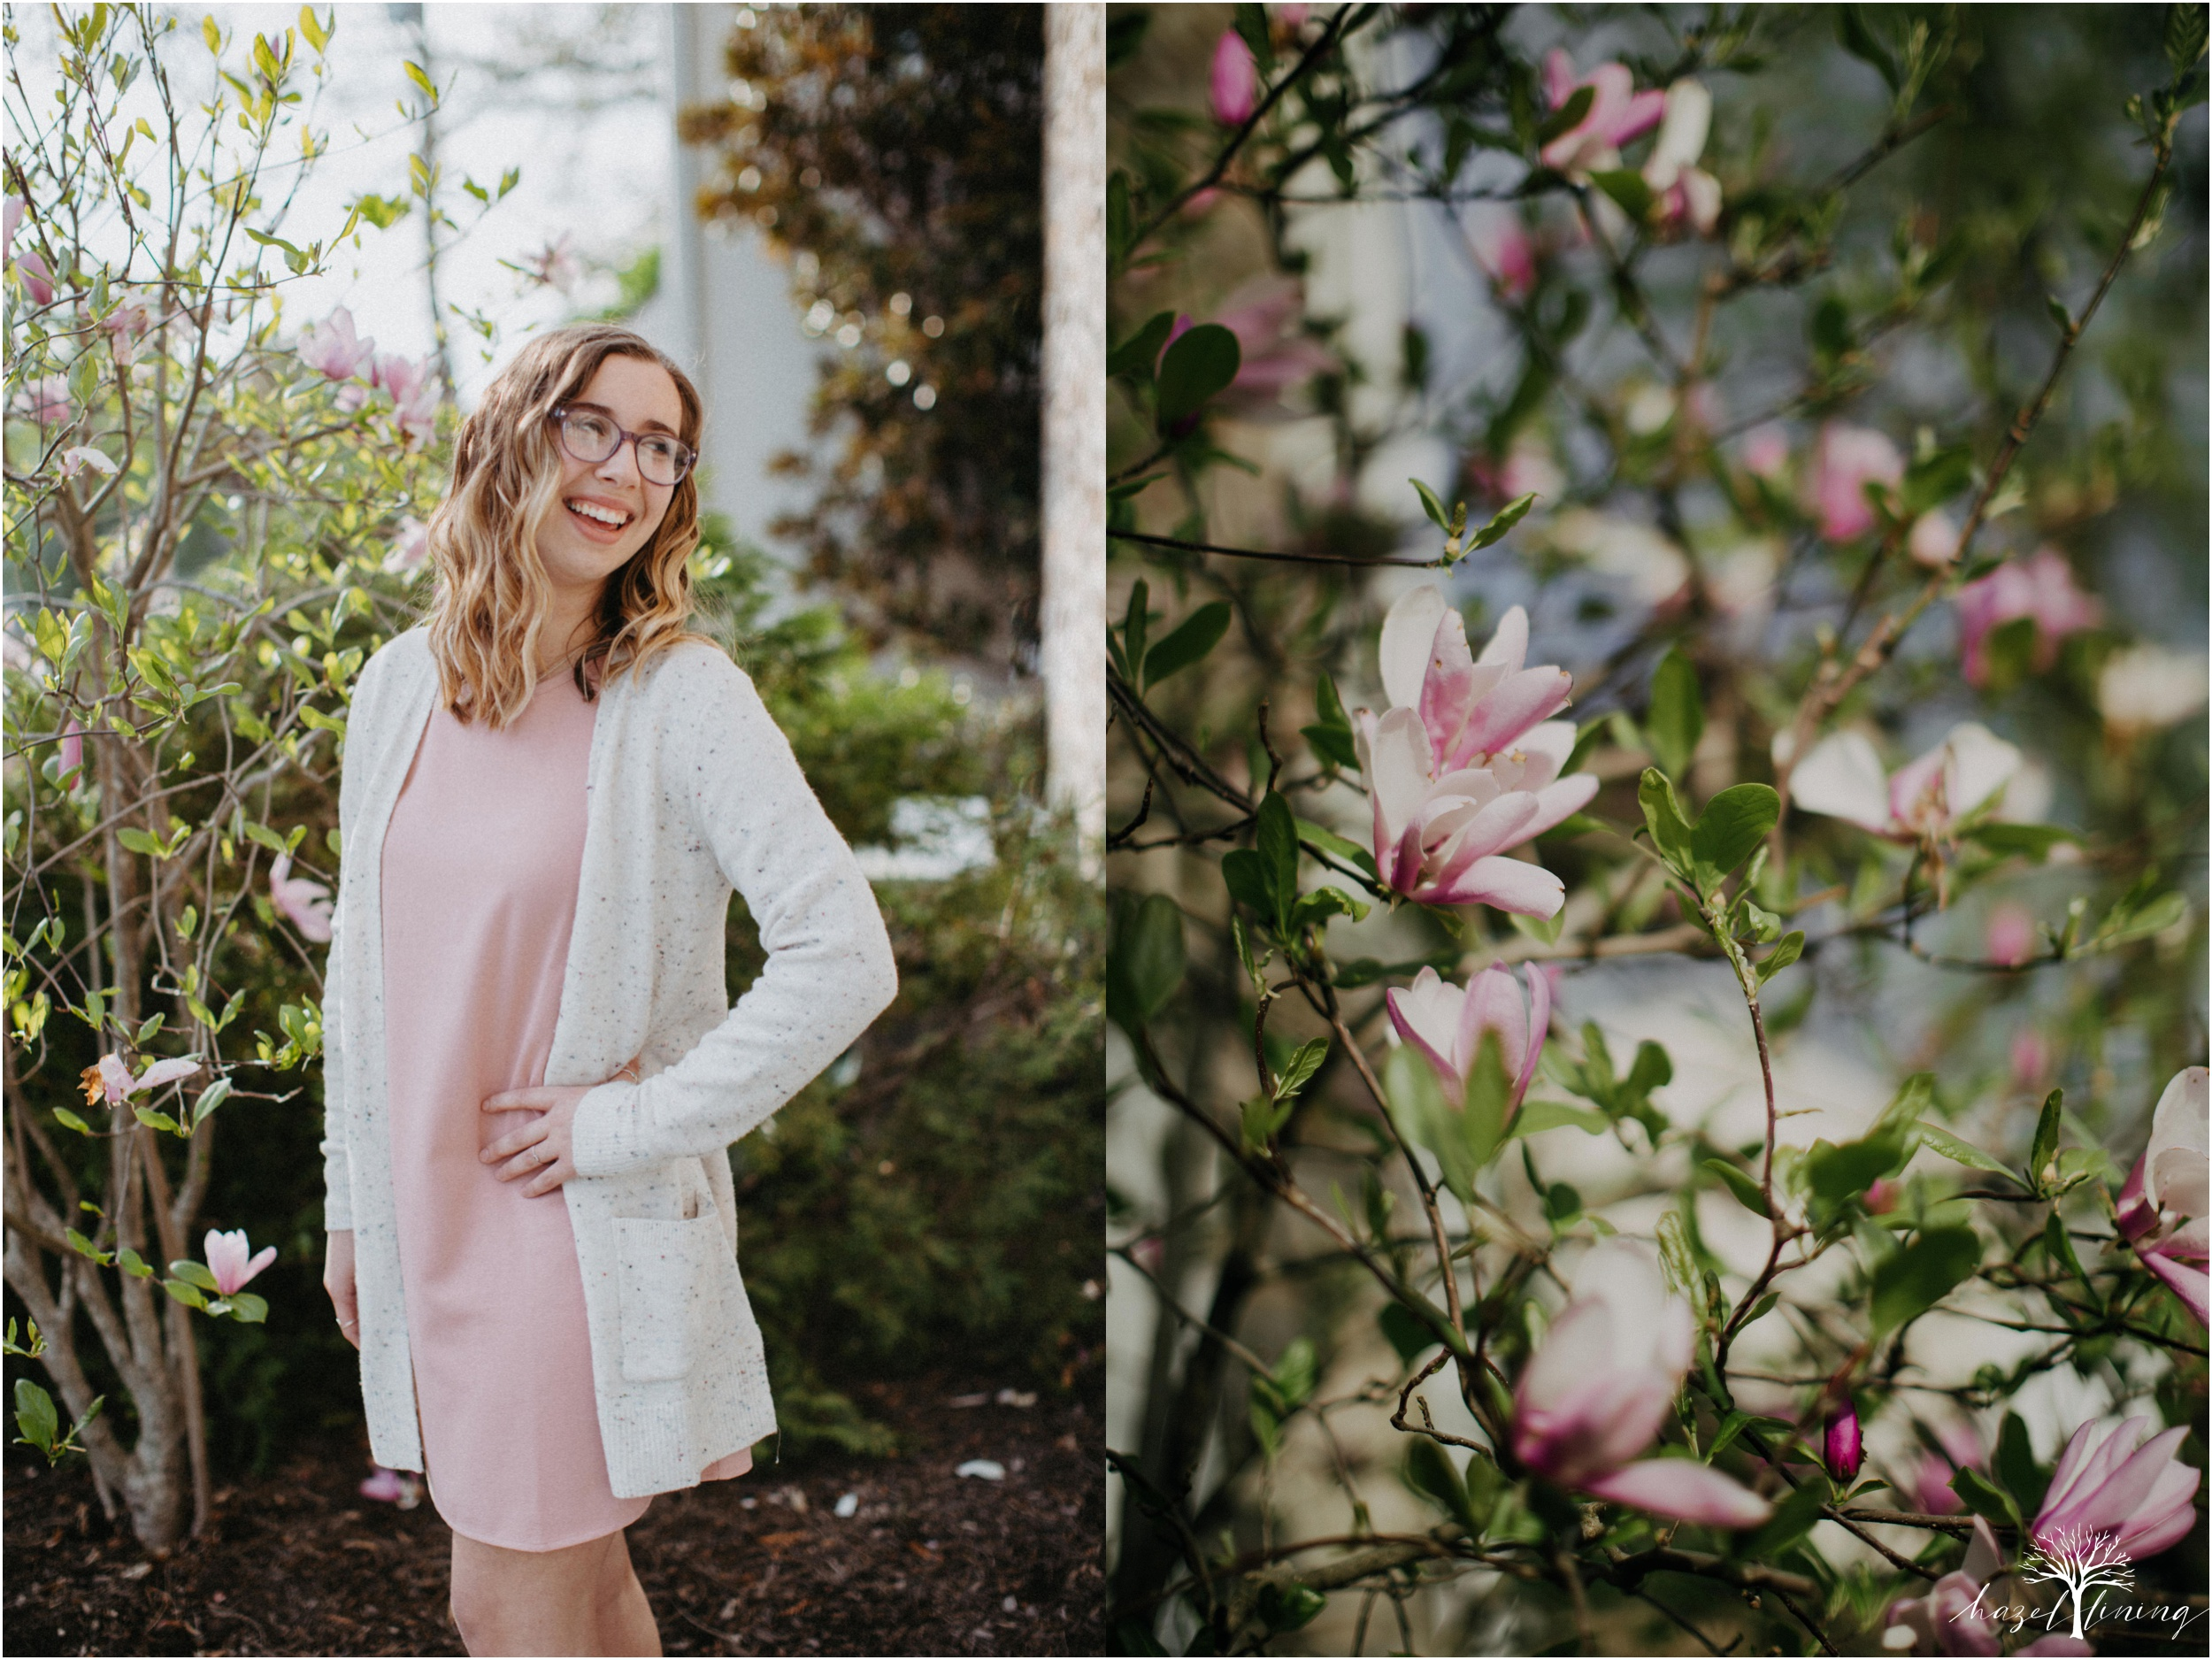 maddie-kiser-senior-portrait-session-doylestown-pennsylvania-spring-hazel-lining-photography-destination-elopement-wedding-engagement-photography-year-in-review_0002.jpg